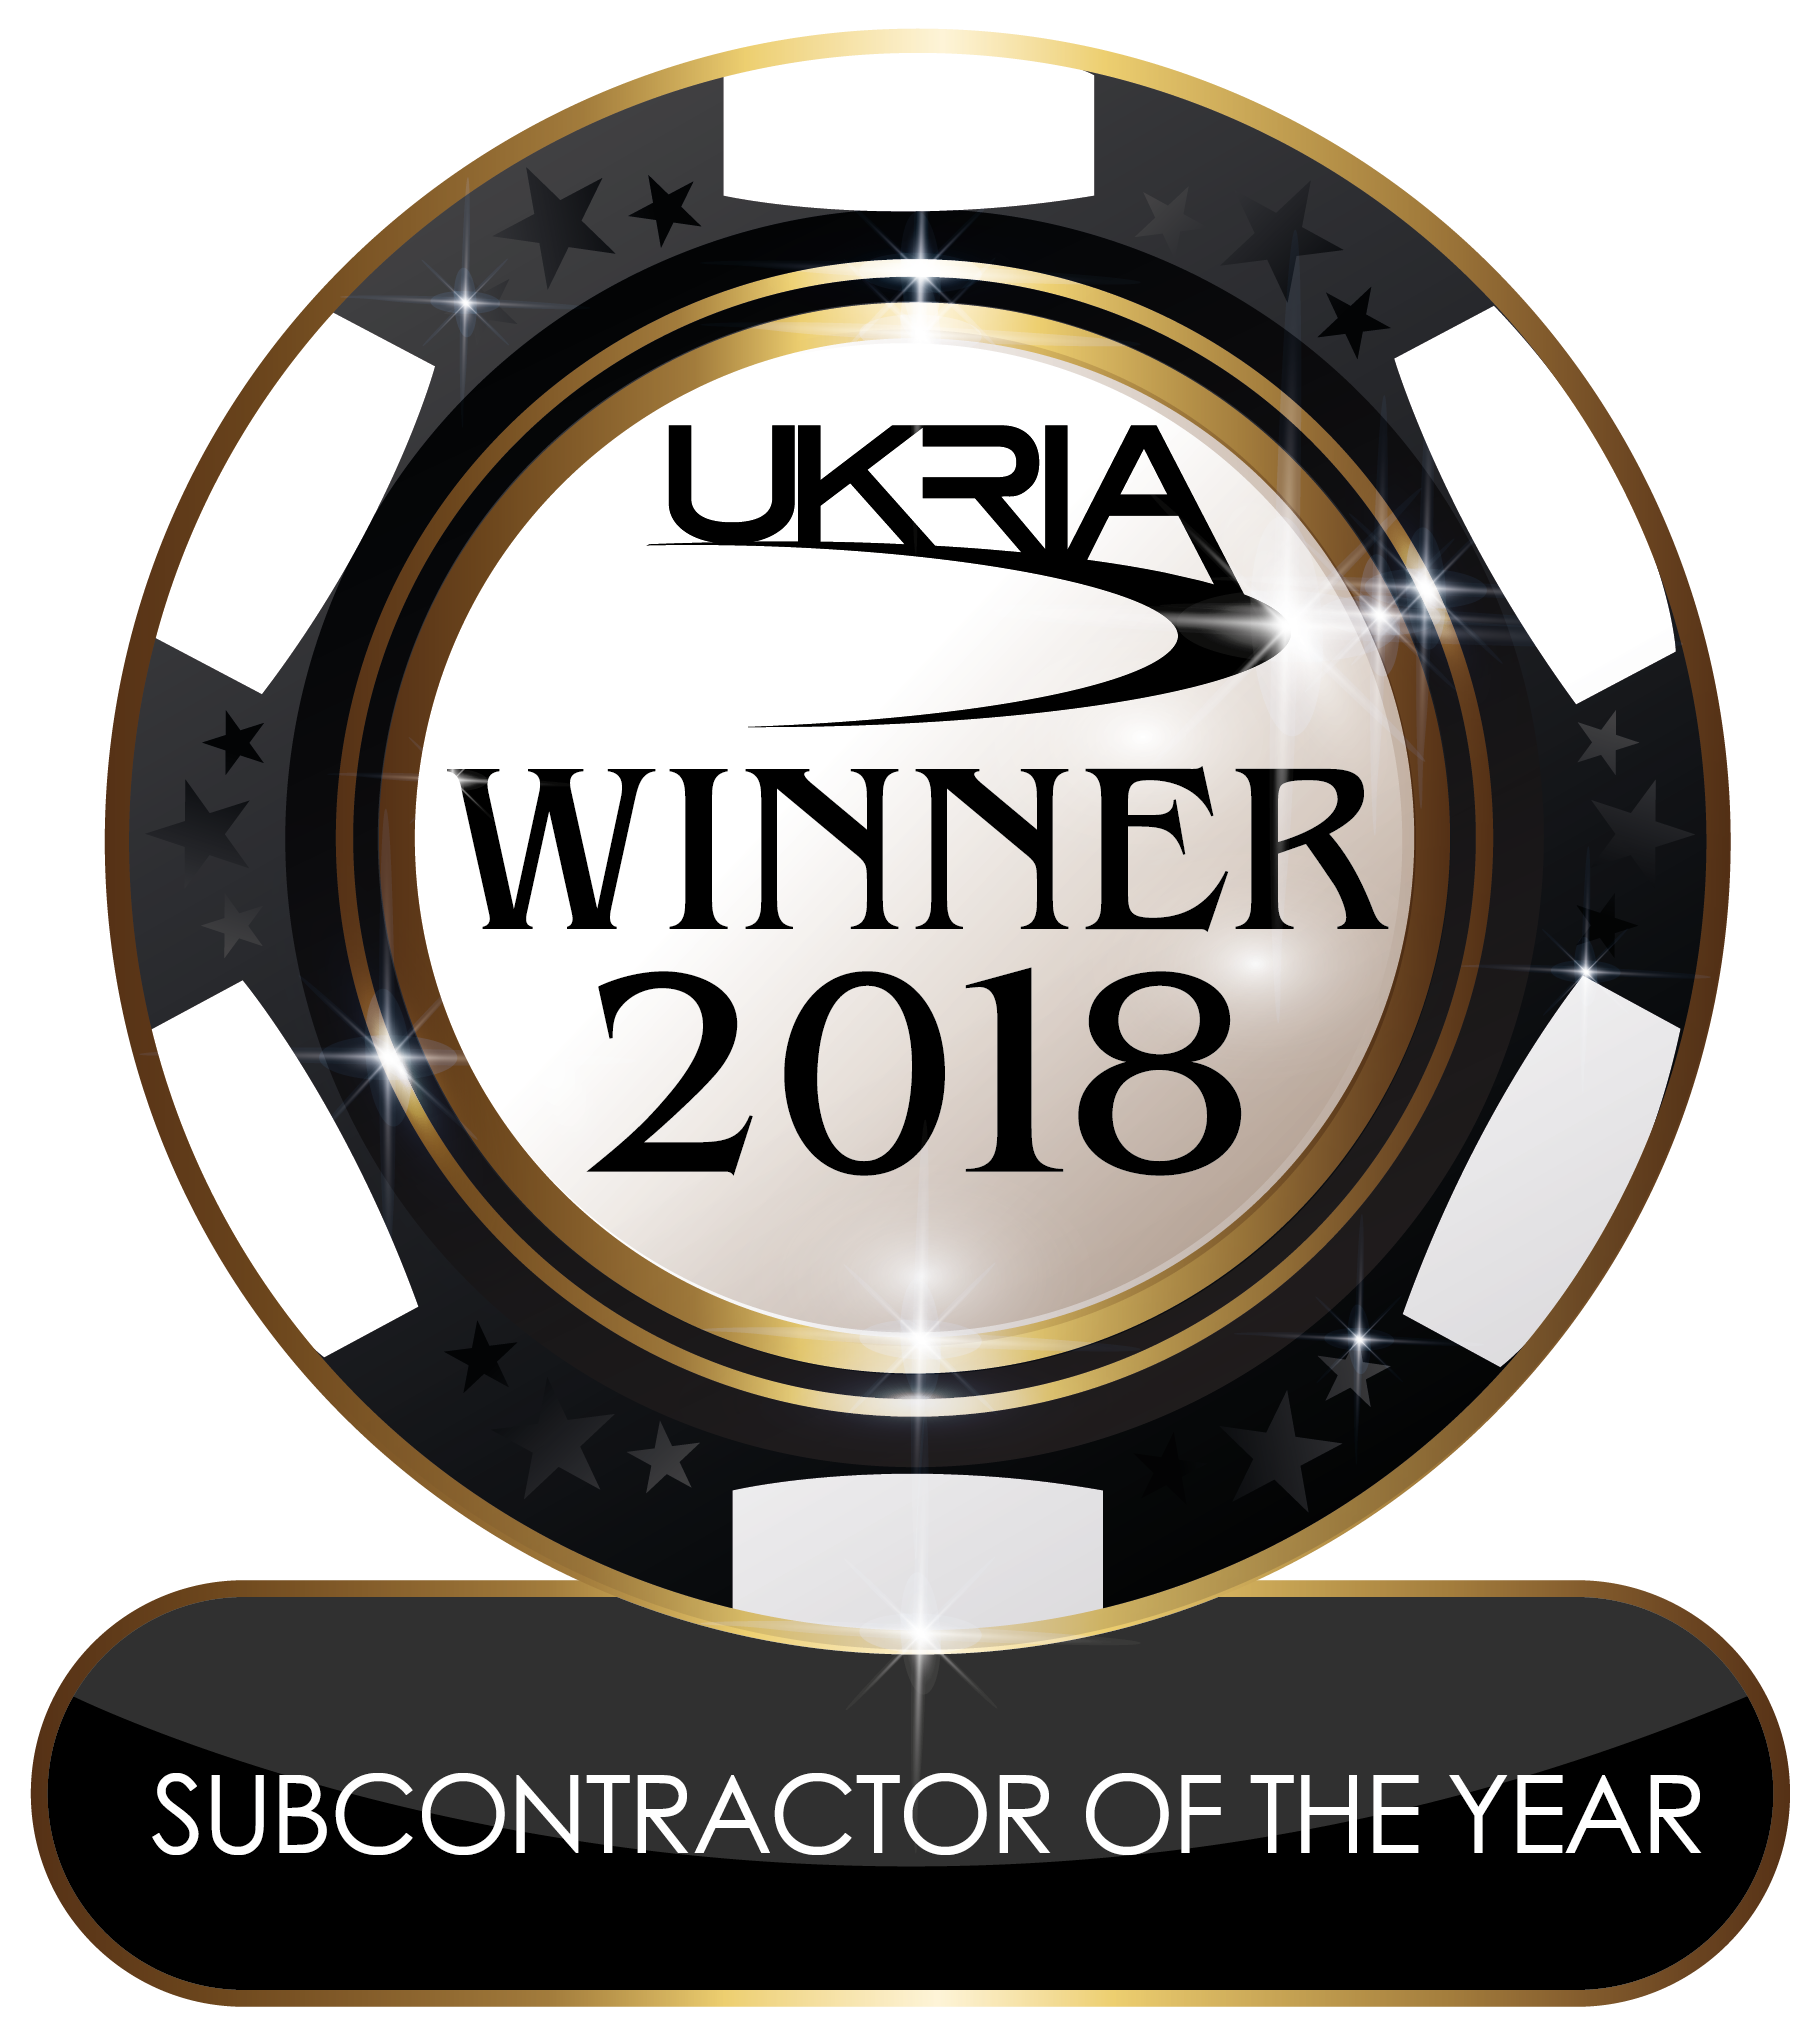 Subcontractor Of The Year